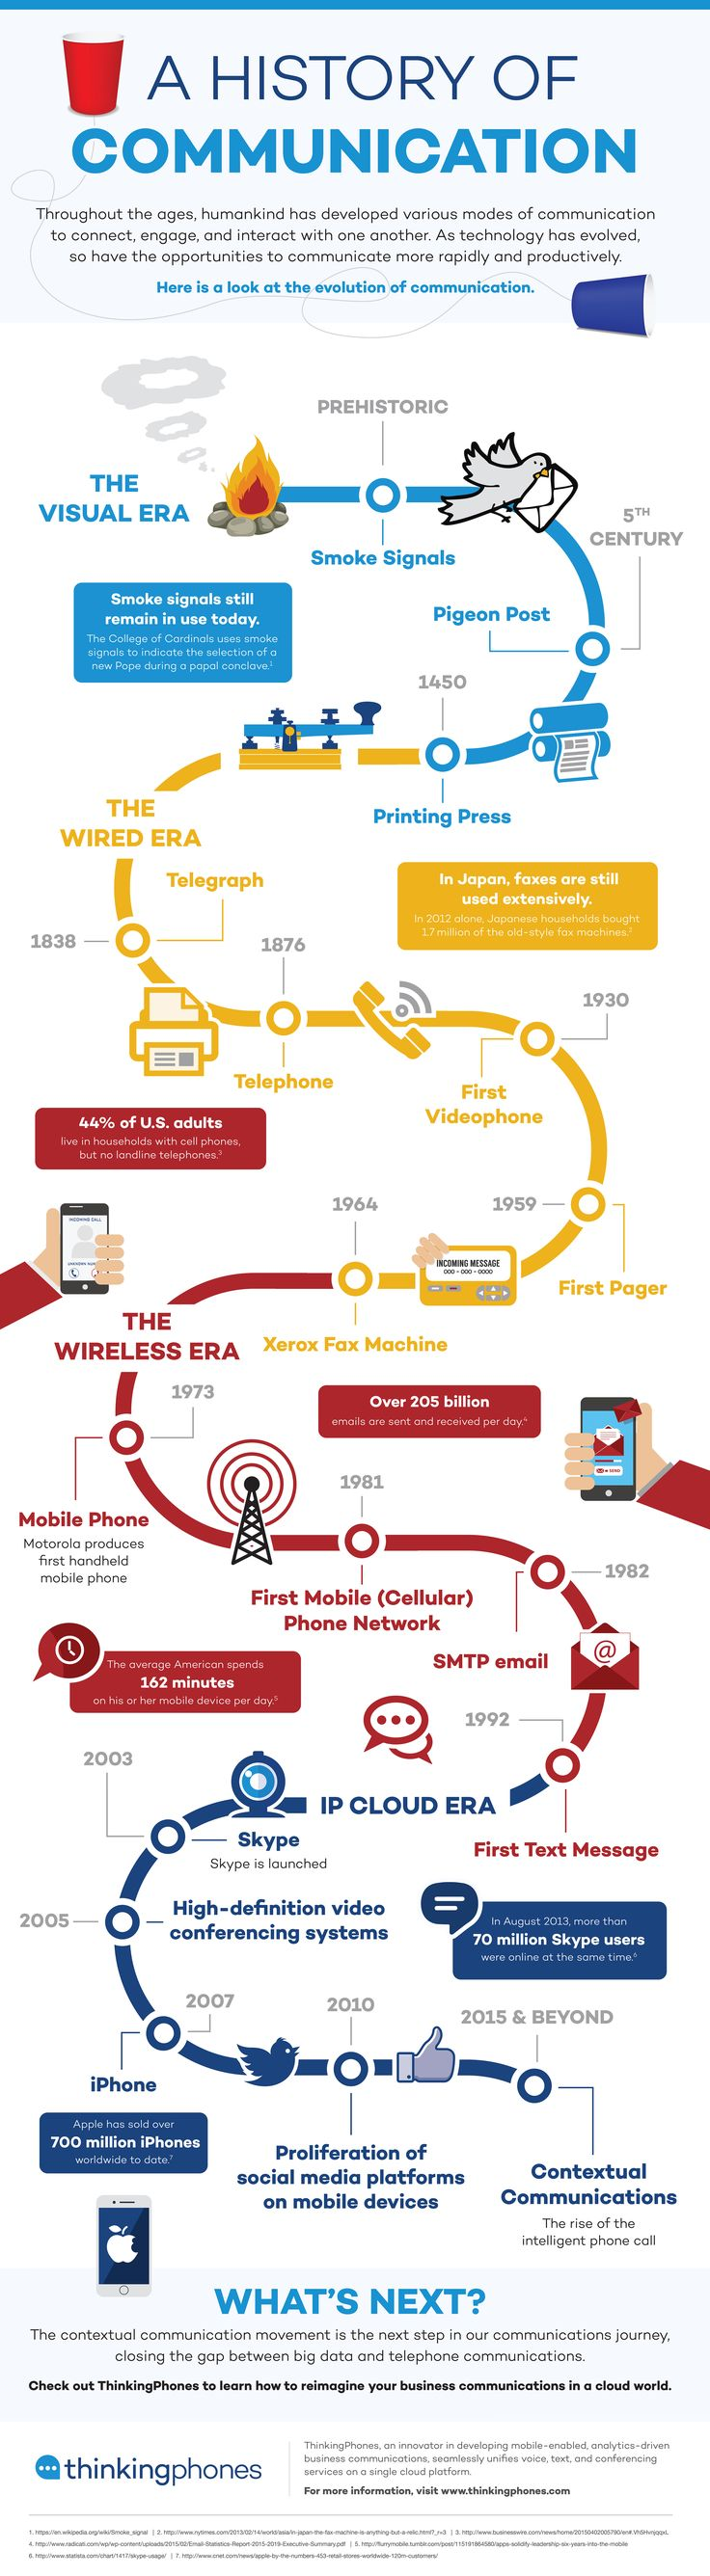 A History of Communication infographic